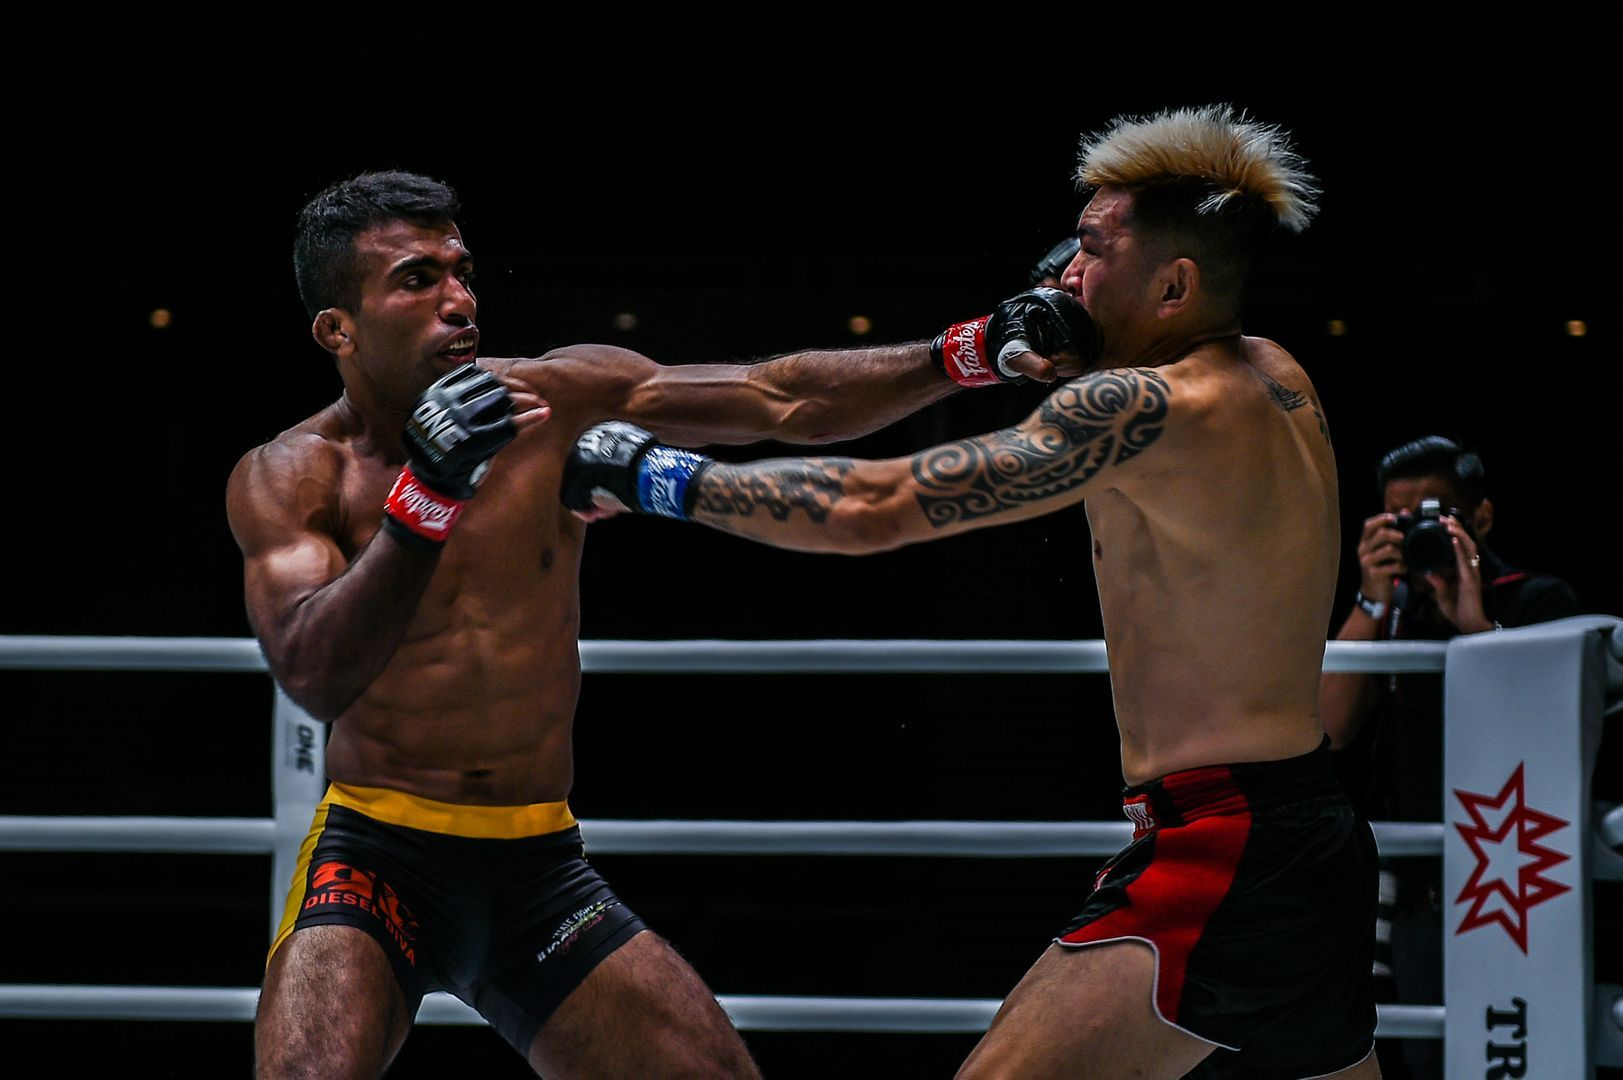 Indian MMA fighter Rahul Raju punches Richard Corminal